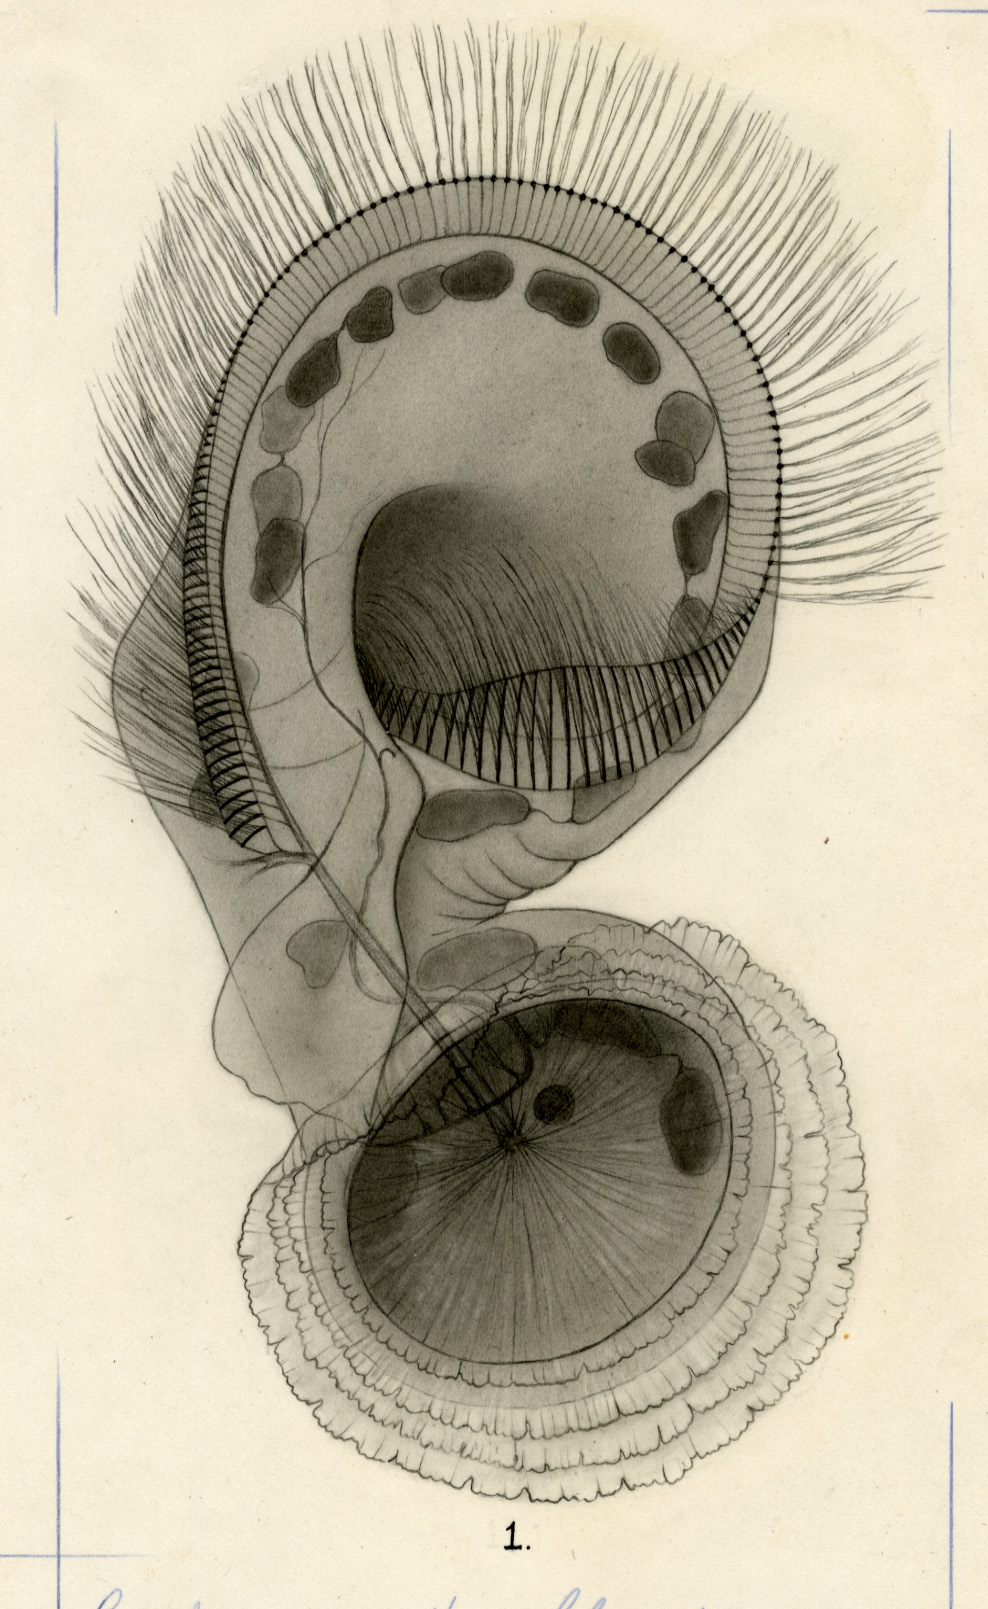 Depiction of Protist